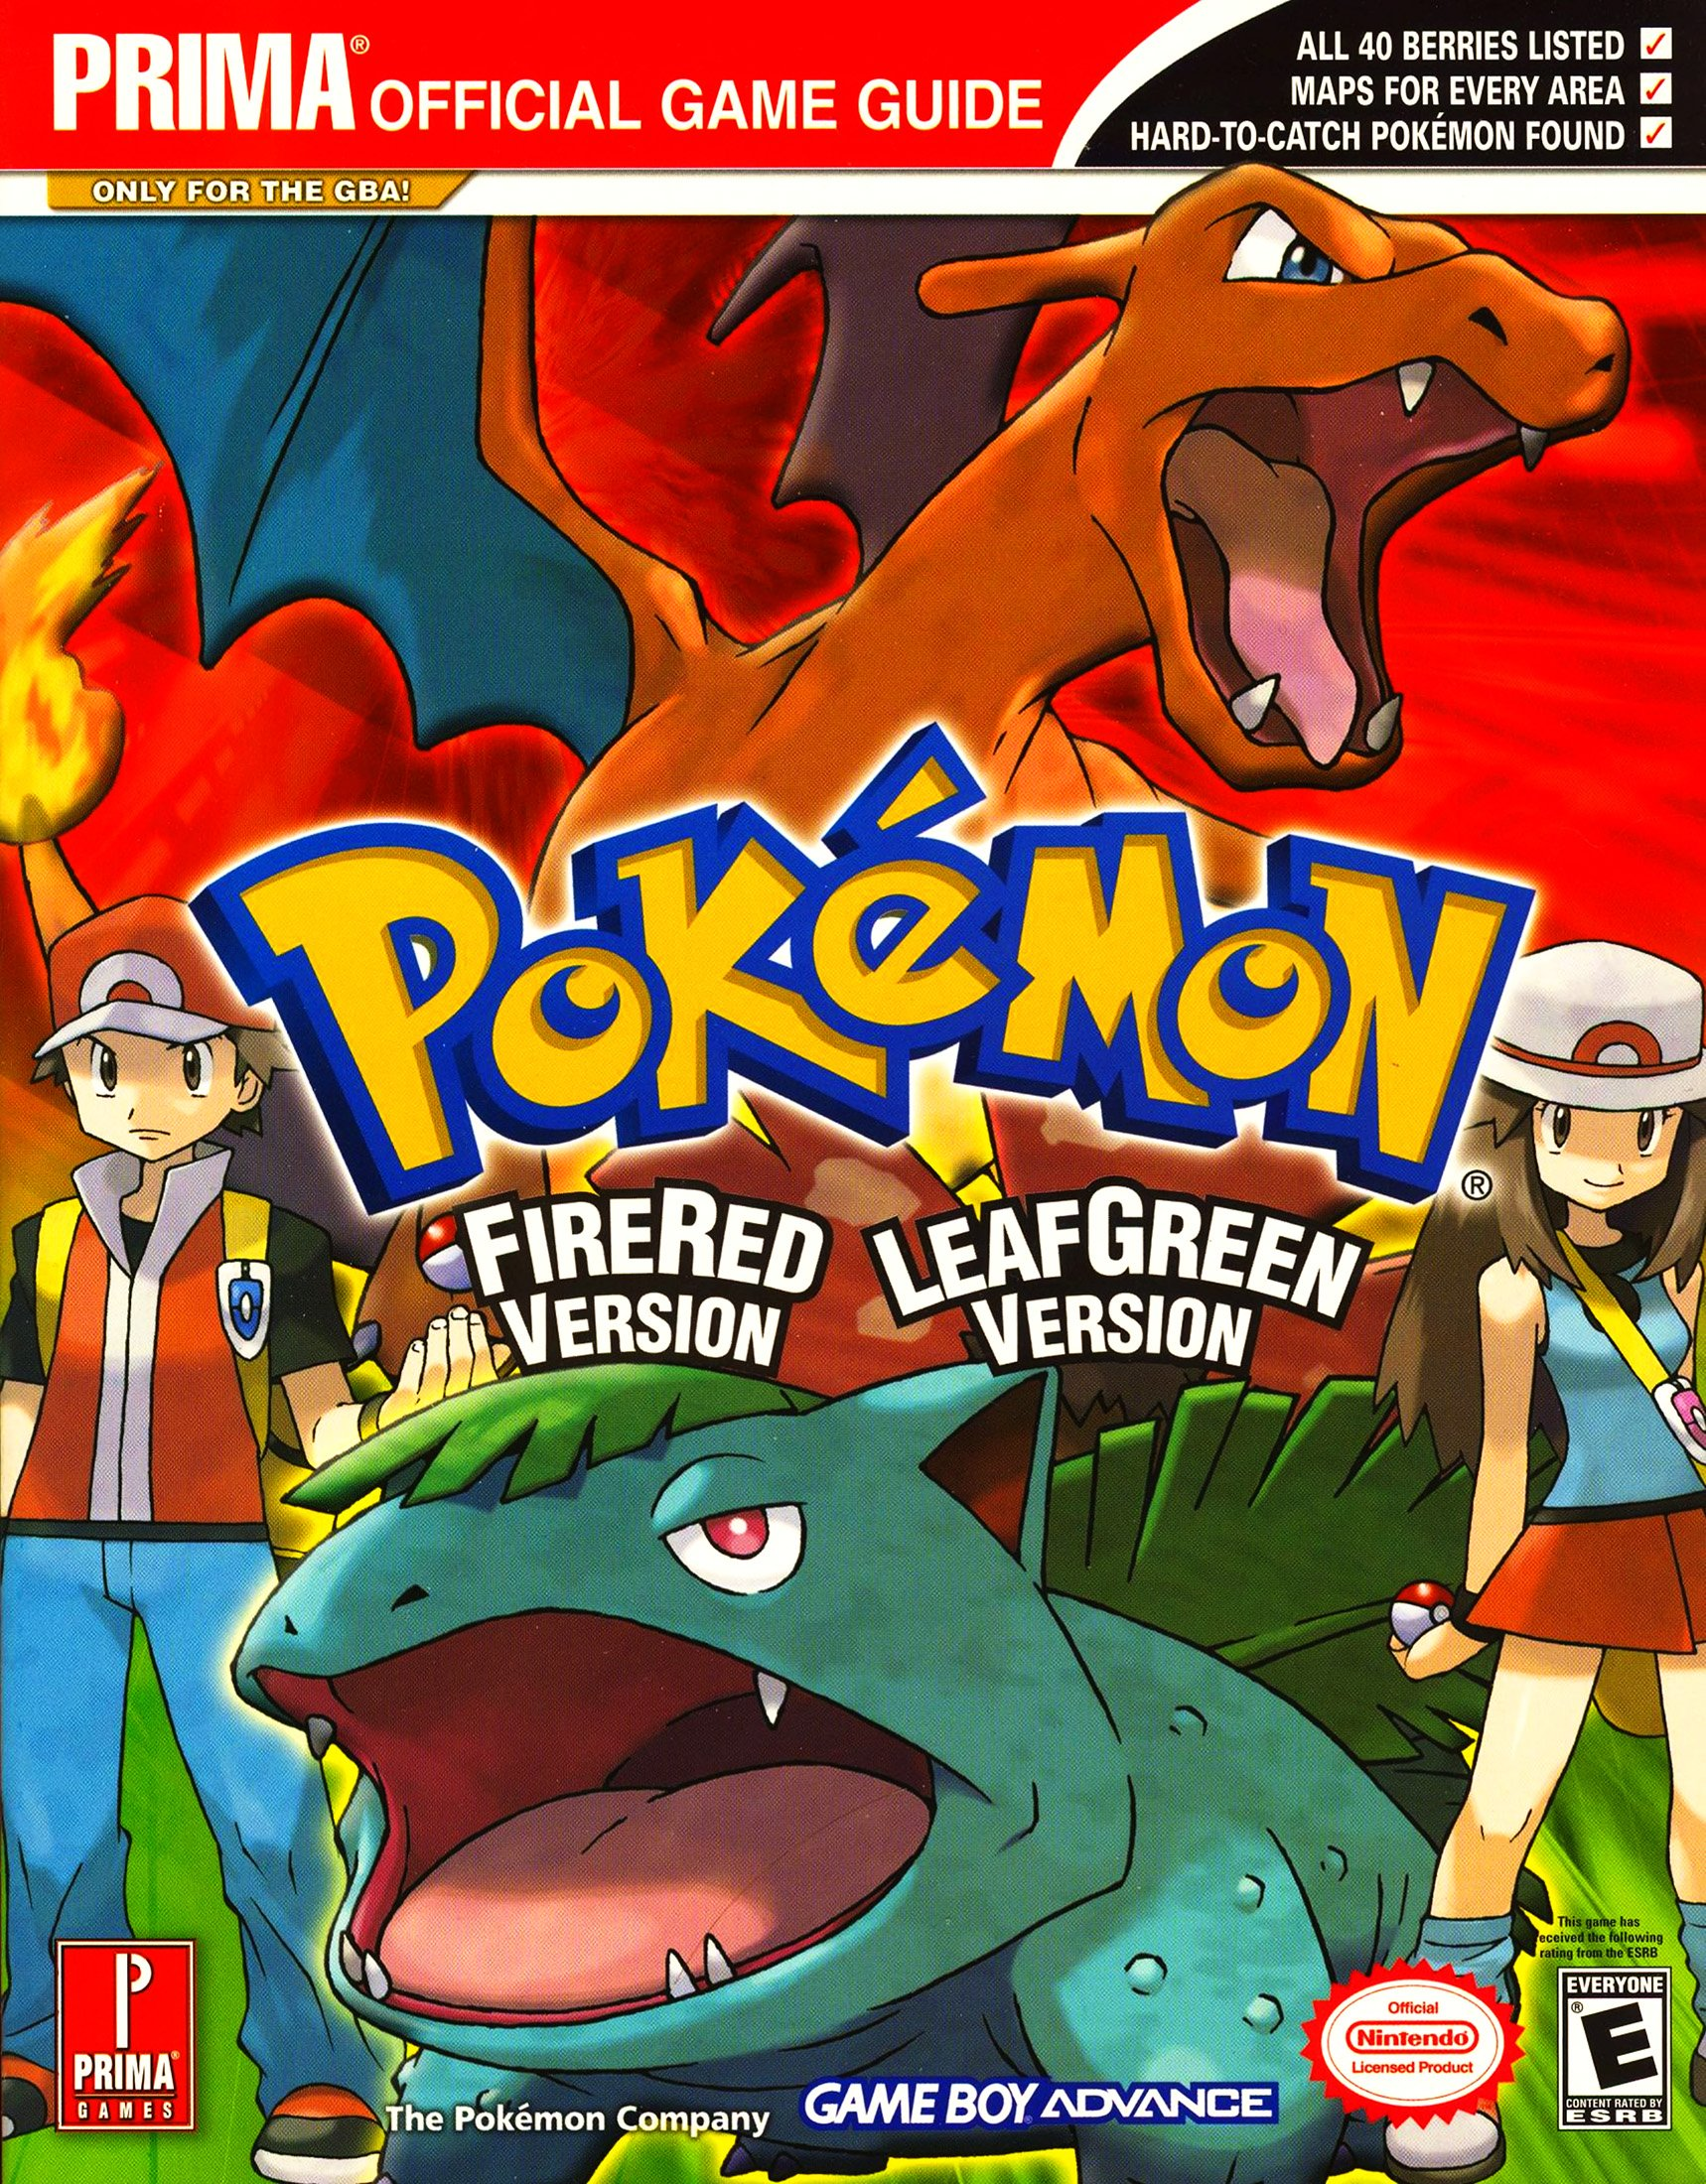 Pokémon Fire Red Version and Leaf Green Version (Prima Official Game Guide)